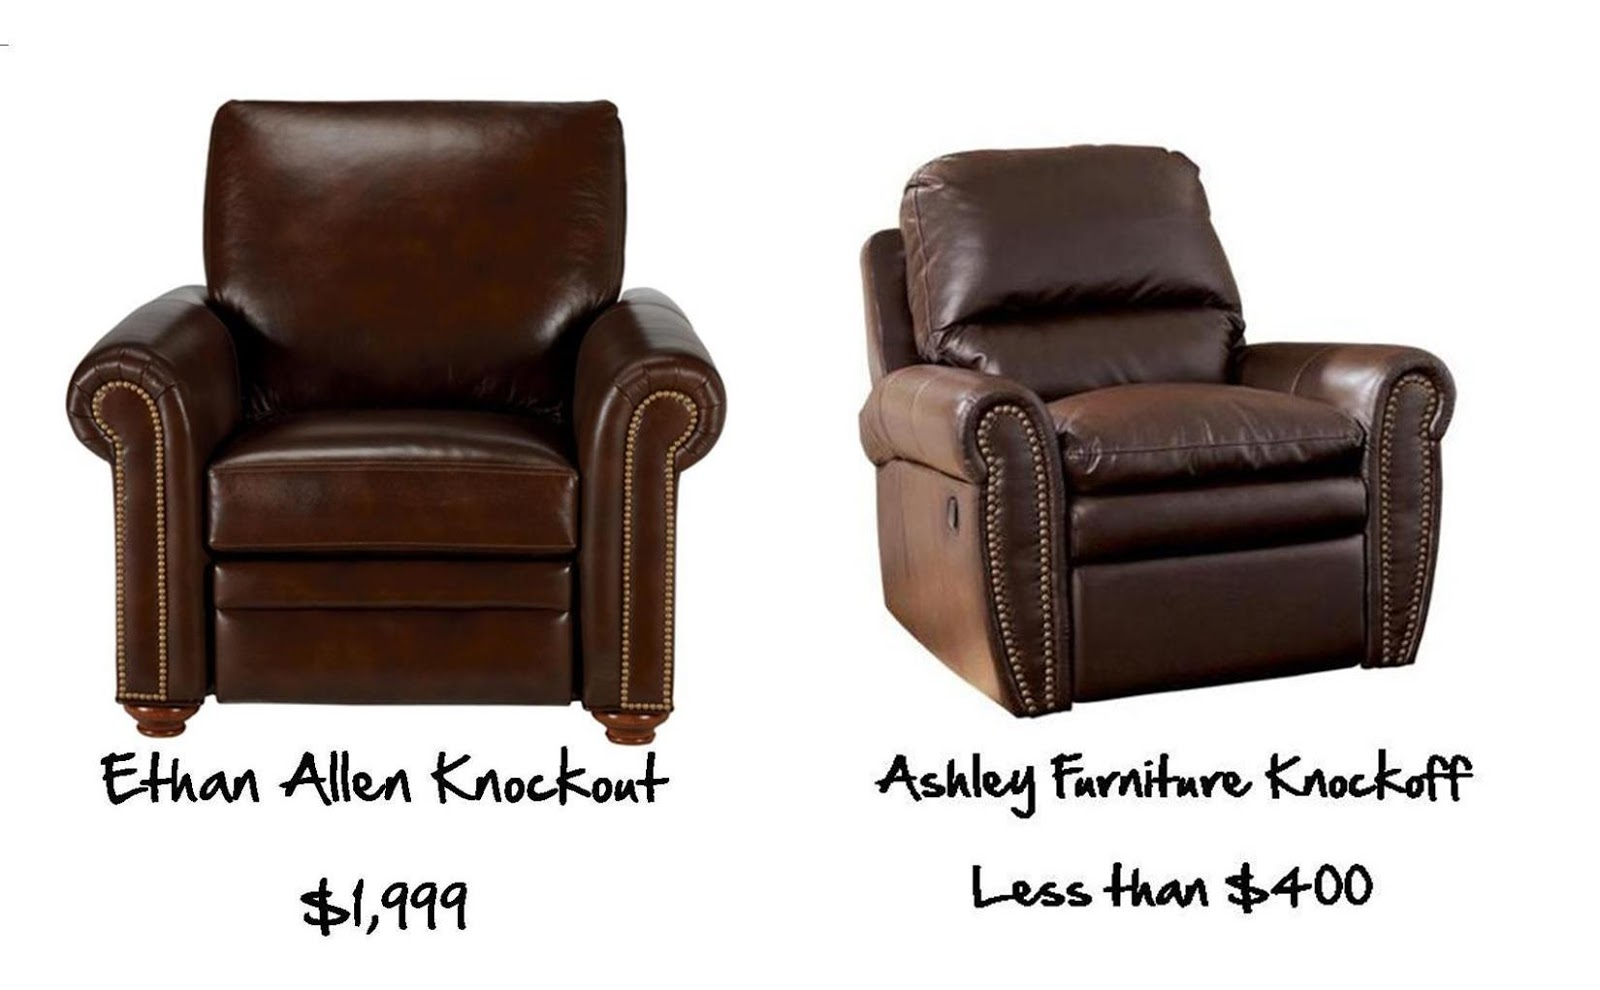 recliner vs chair with ottoman straight back chairs office domesticated diva: home sweet home: knockout knockoff (interior decorating on a budget)